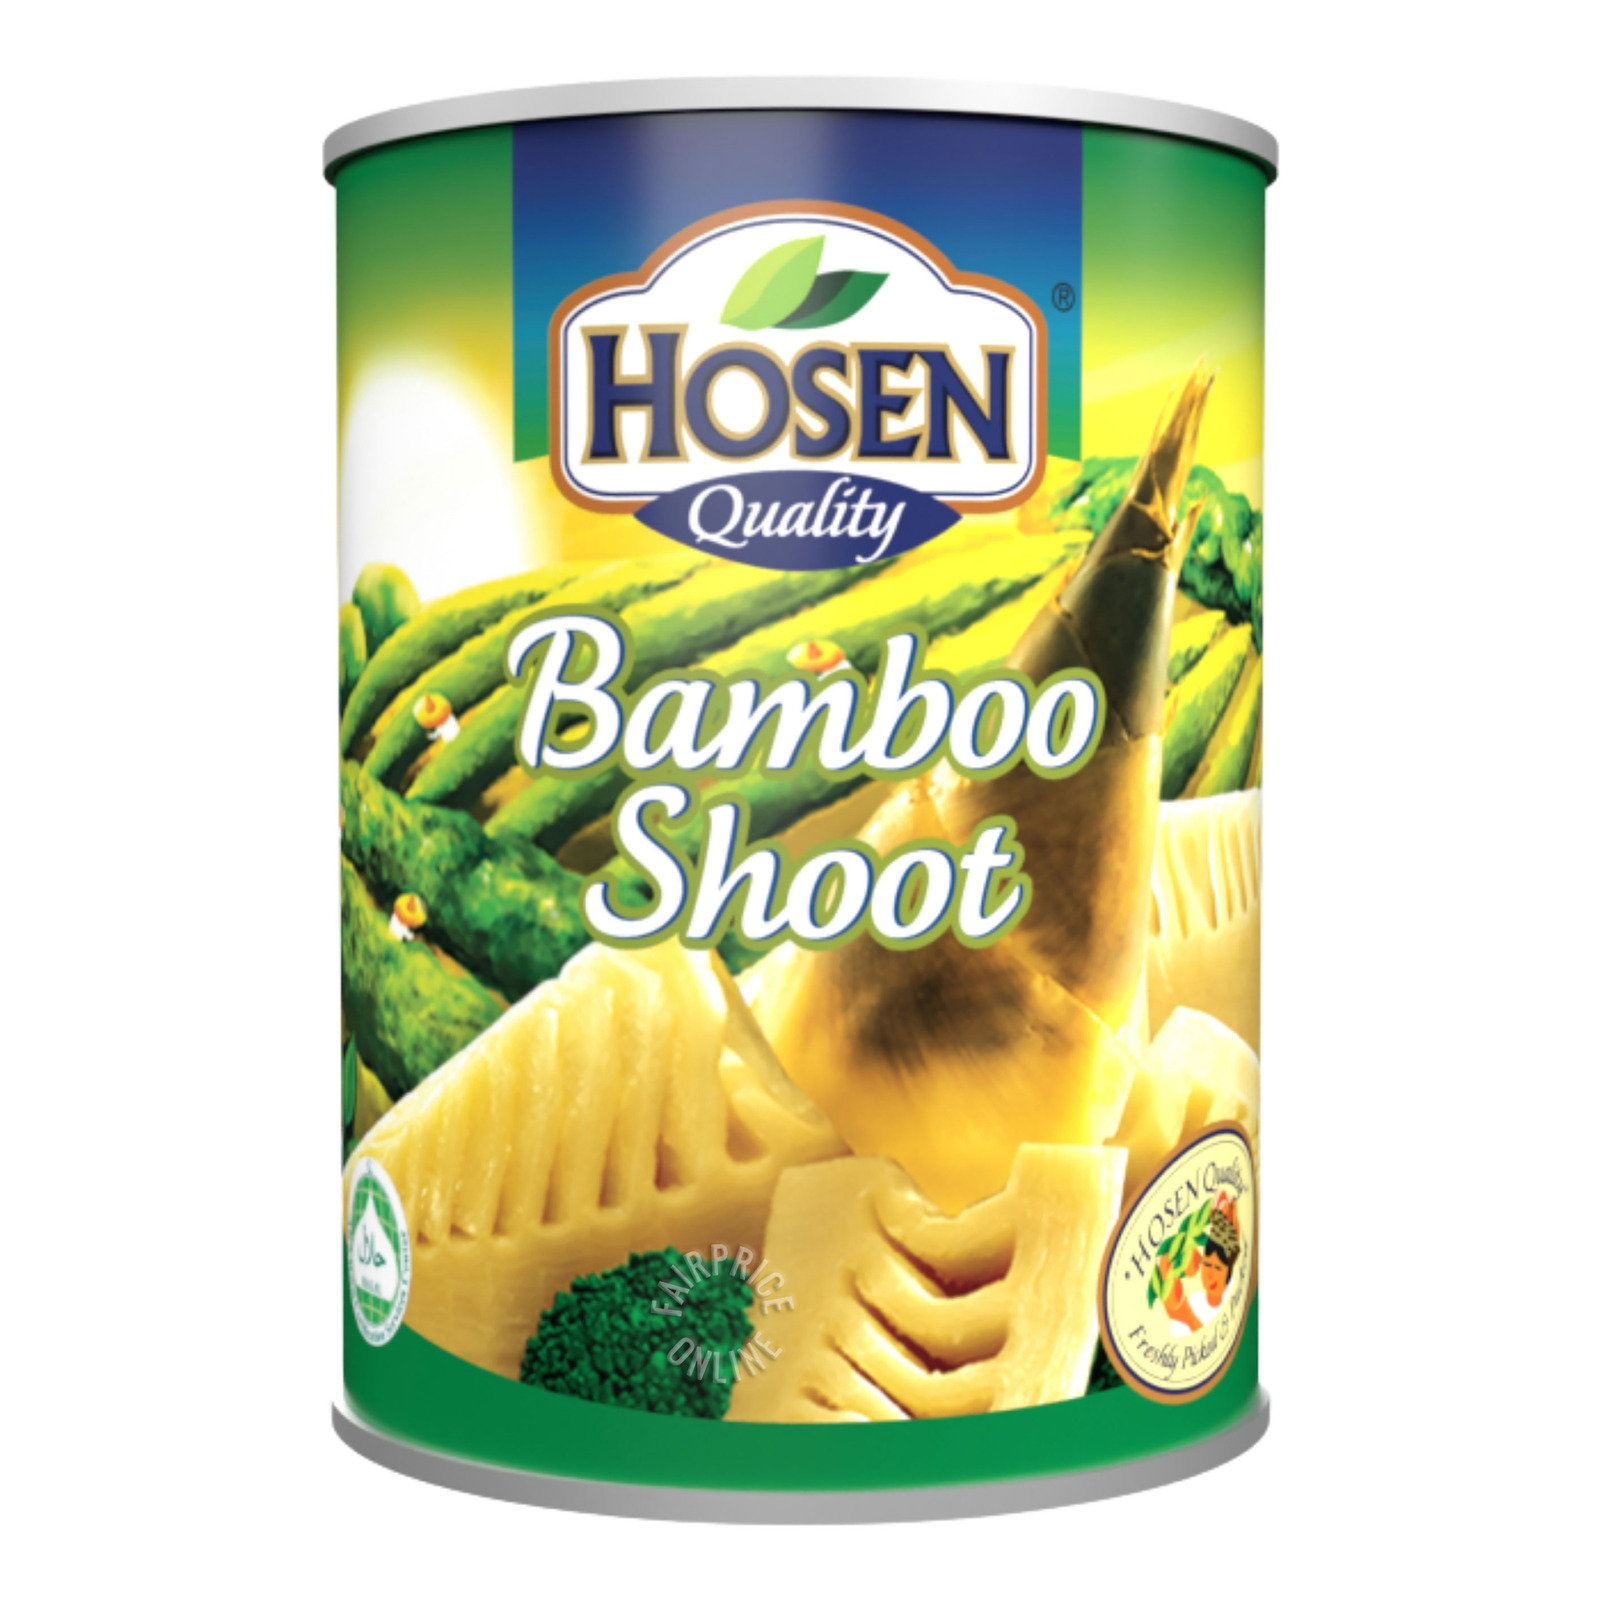 Hosen Bamboo Shoot